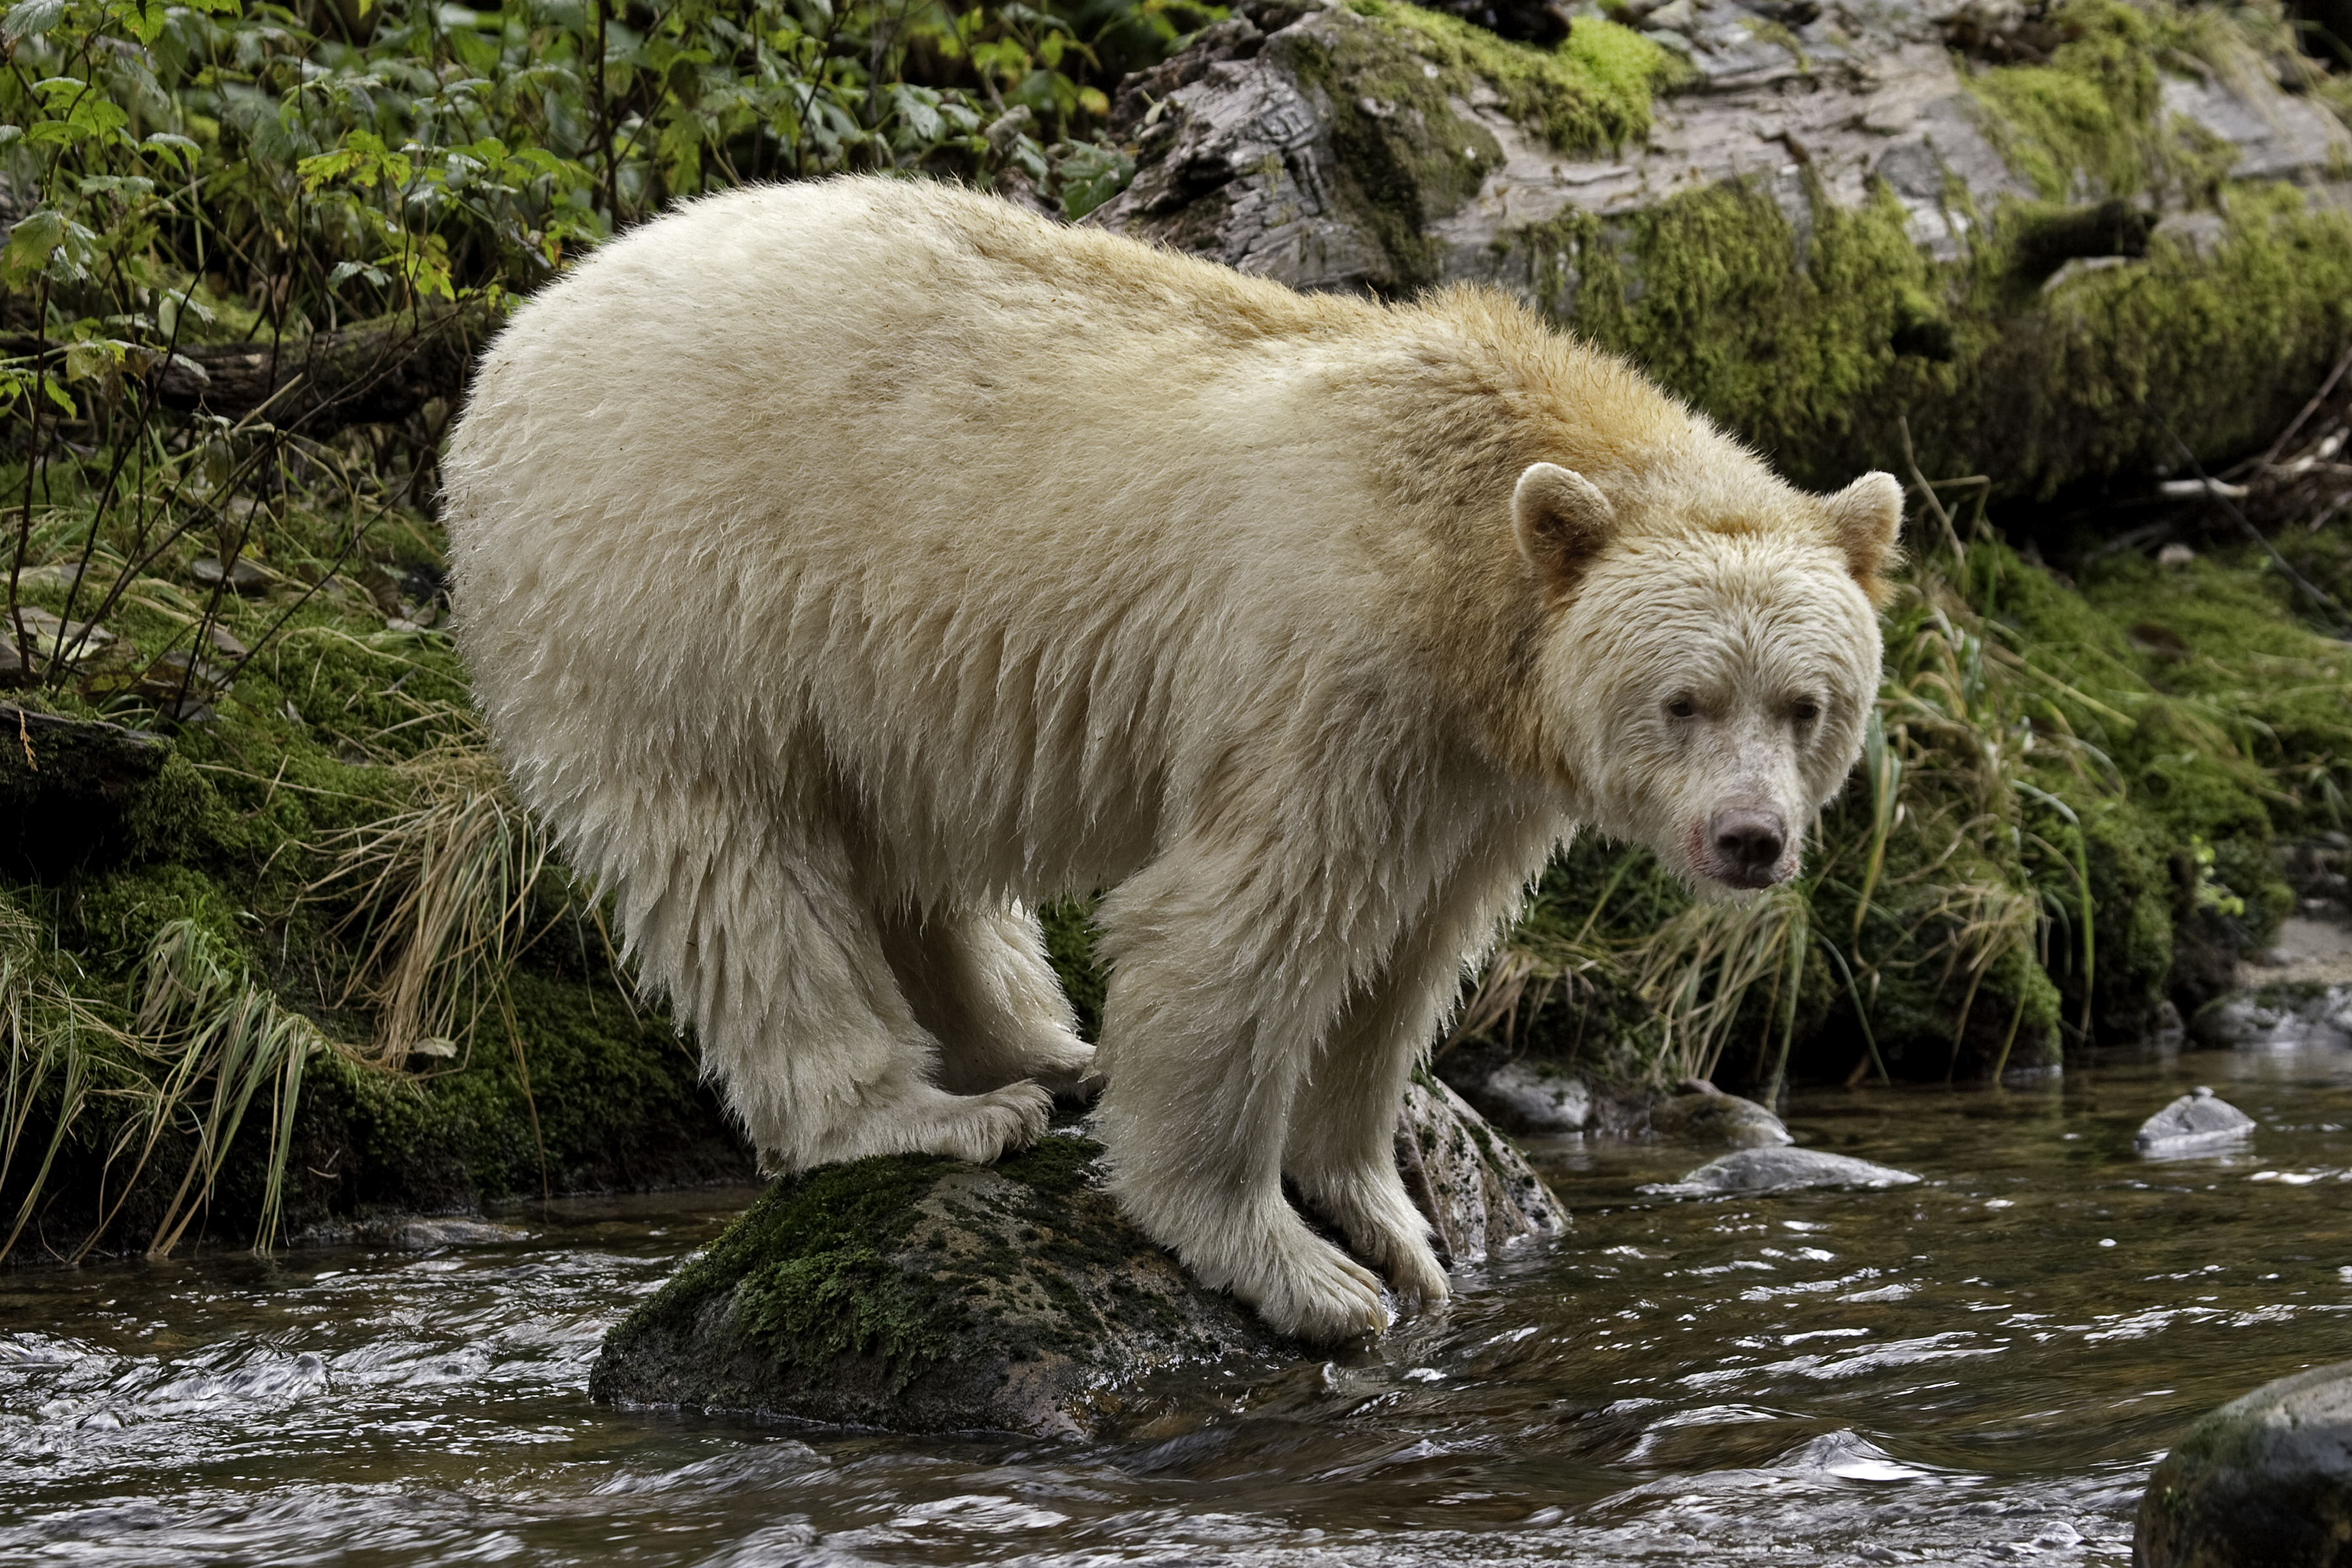 spirit-bear-on-rock2.jpg